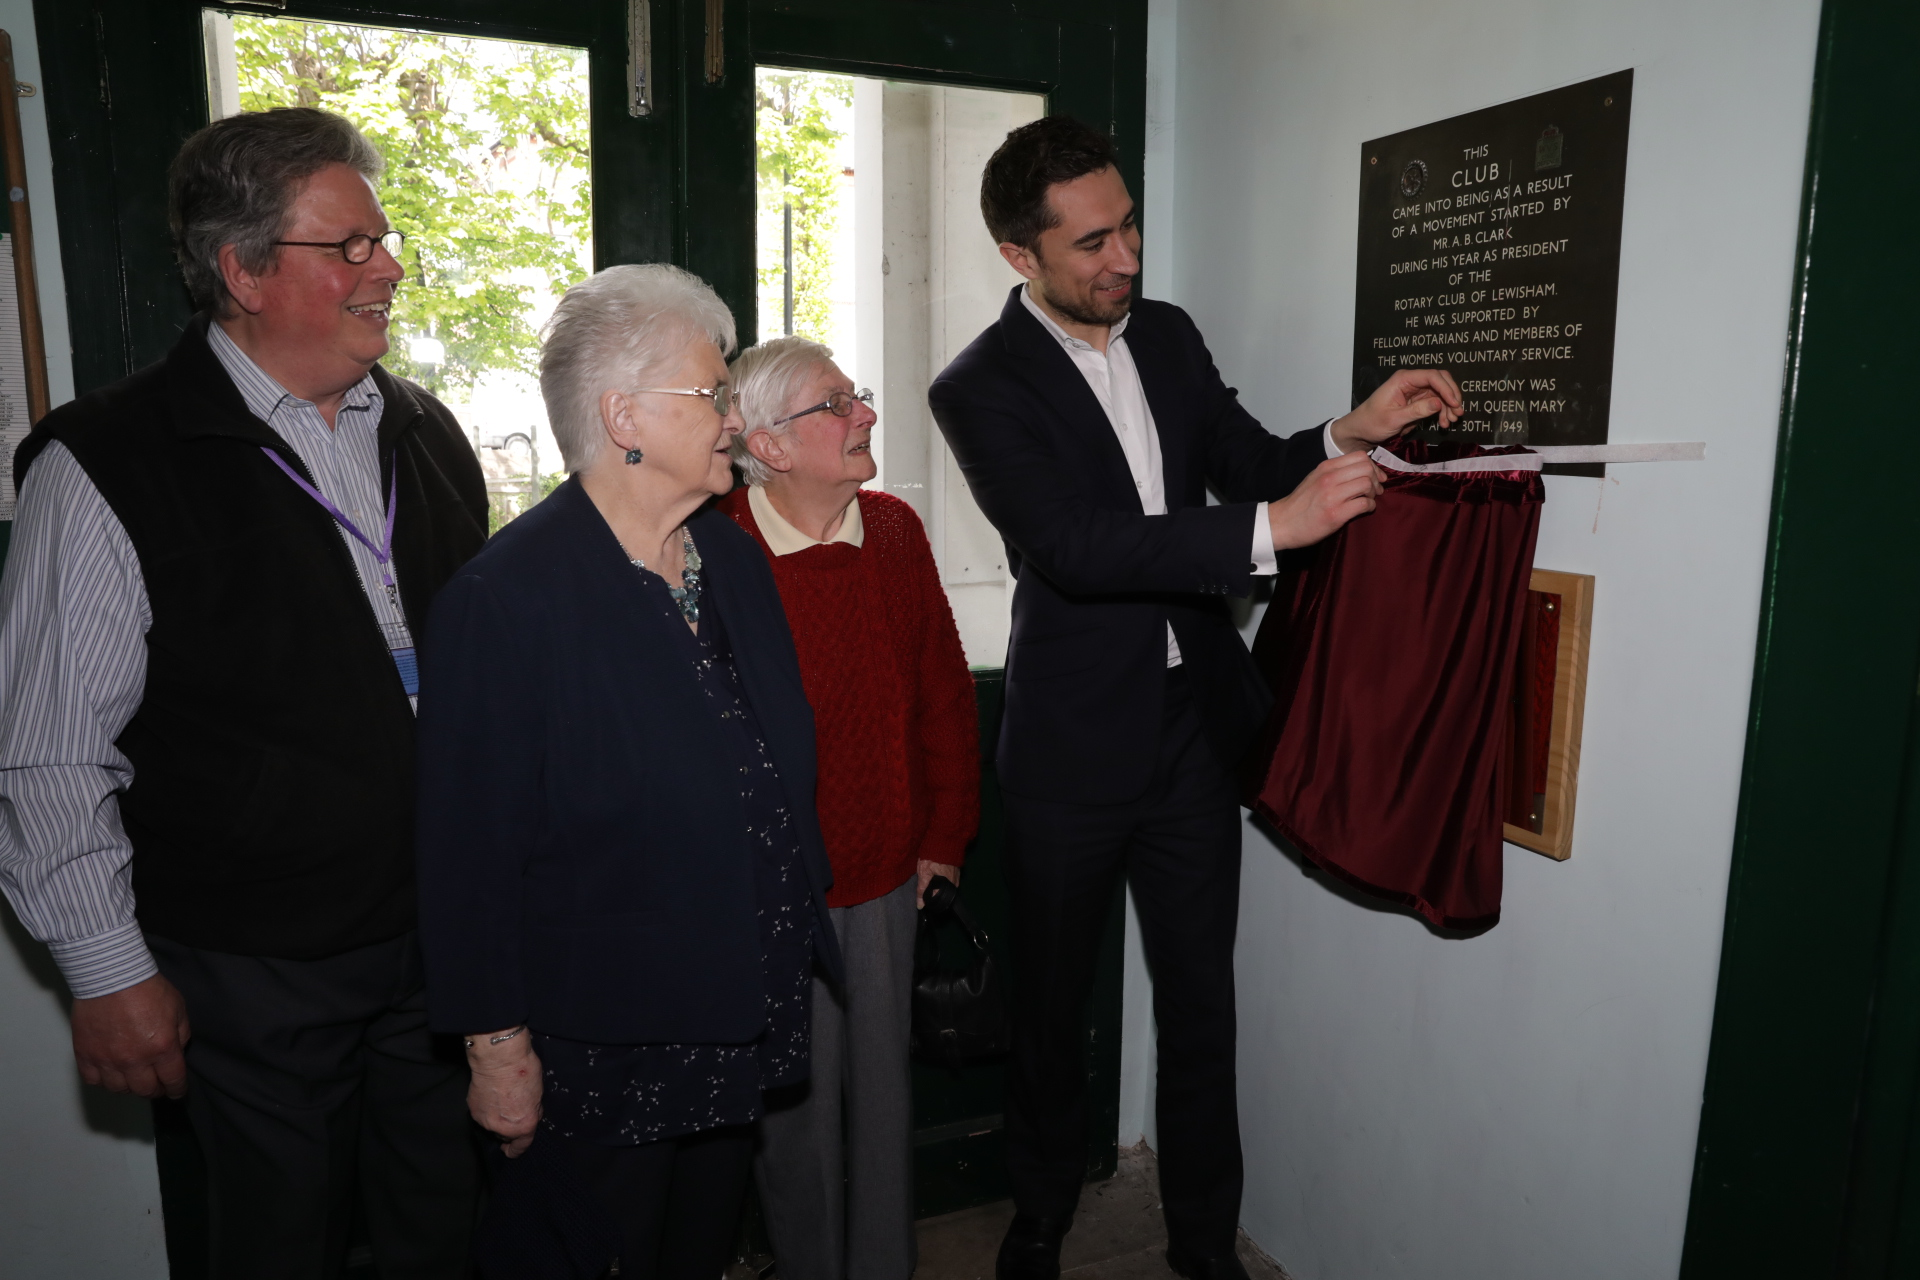 Mayor Damien Egan unveiling the plaque